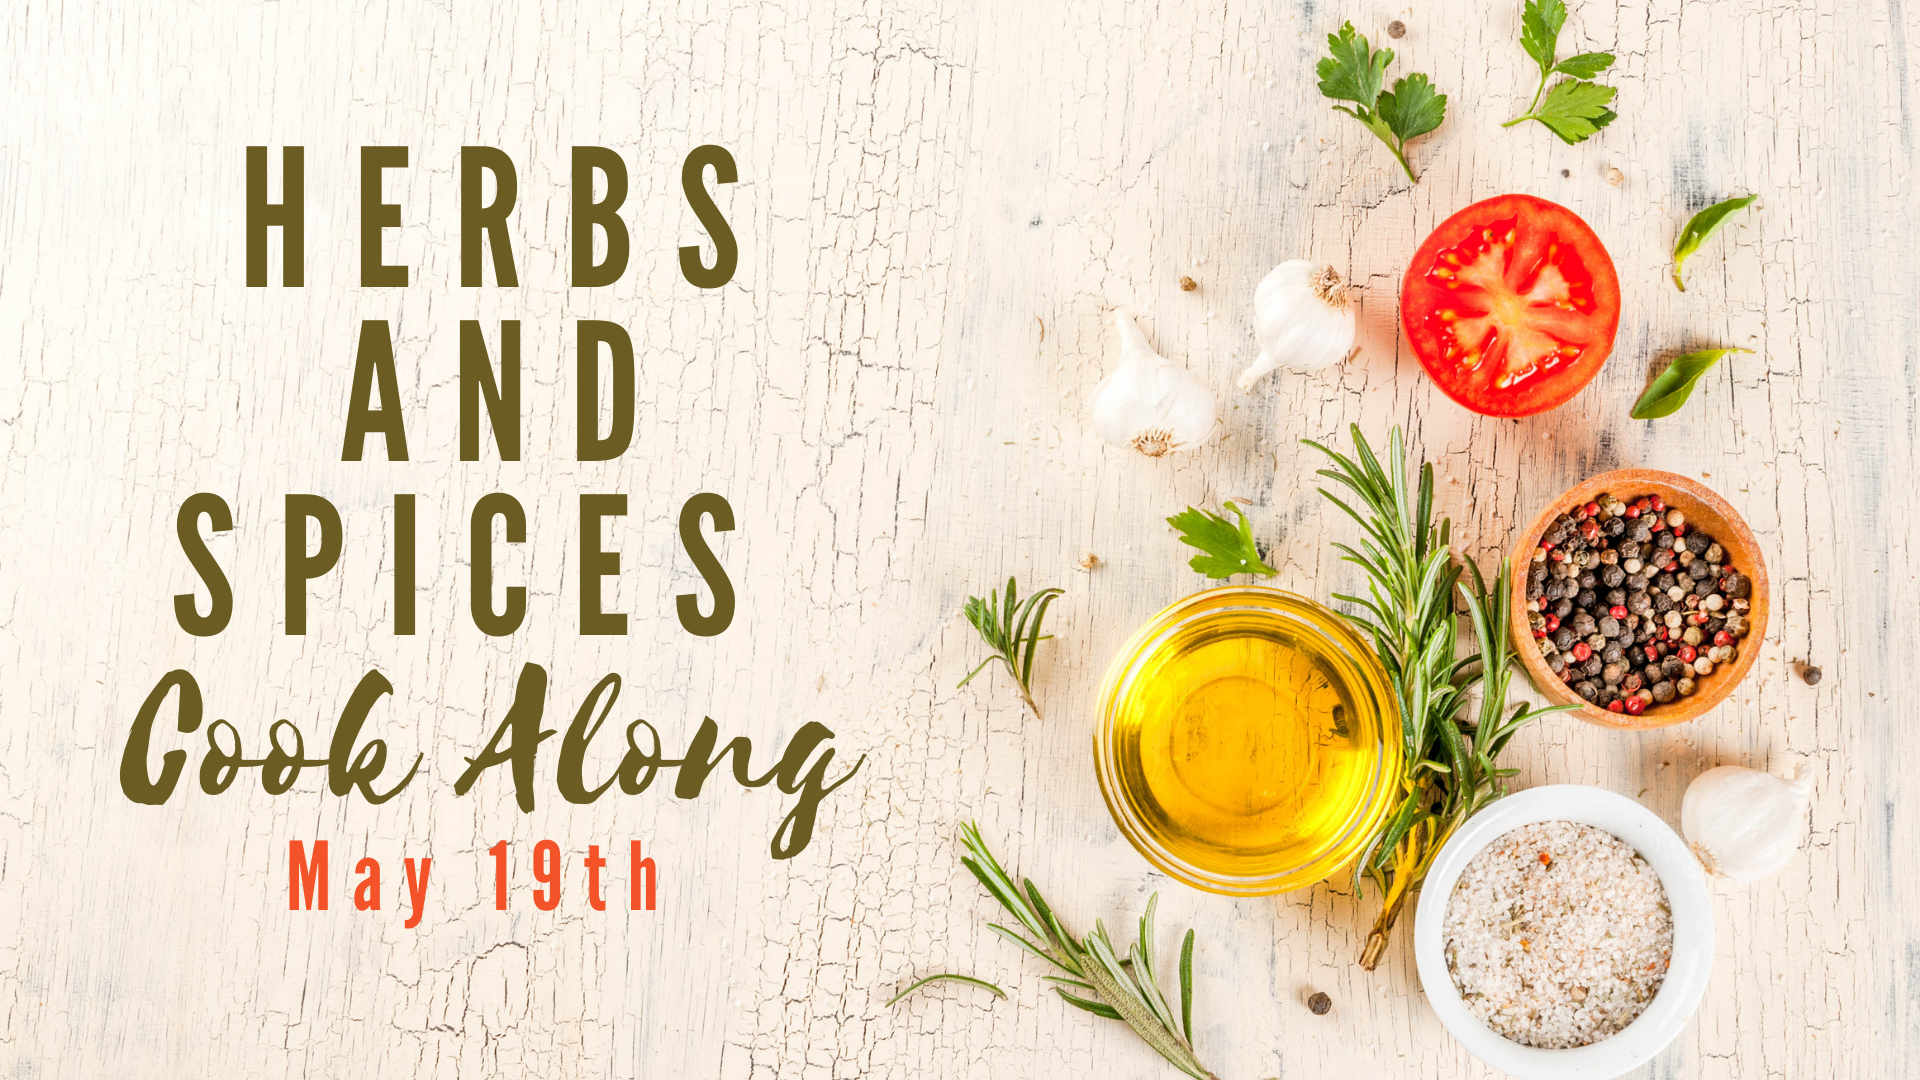 picture of herbs and spices class advertisement